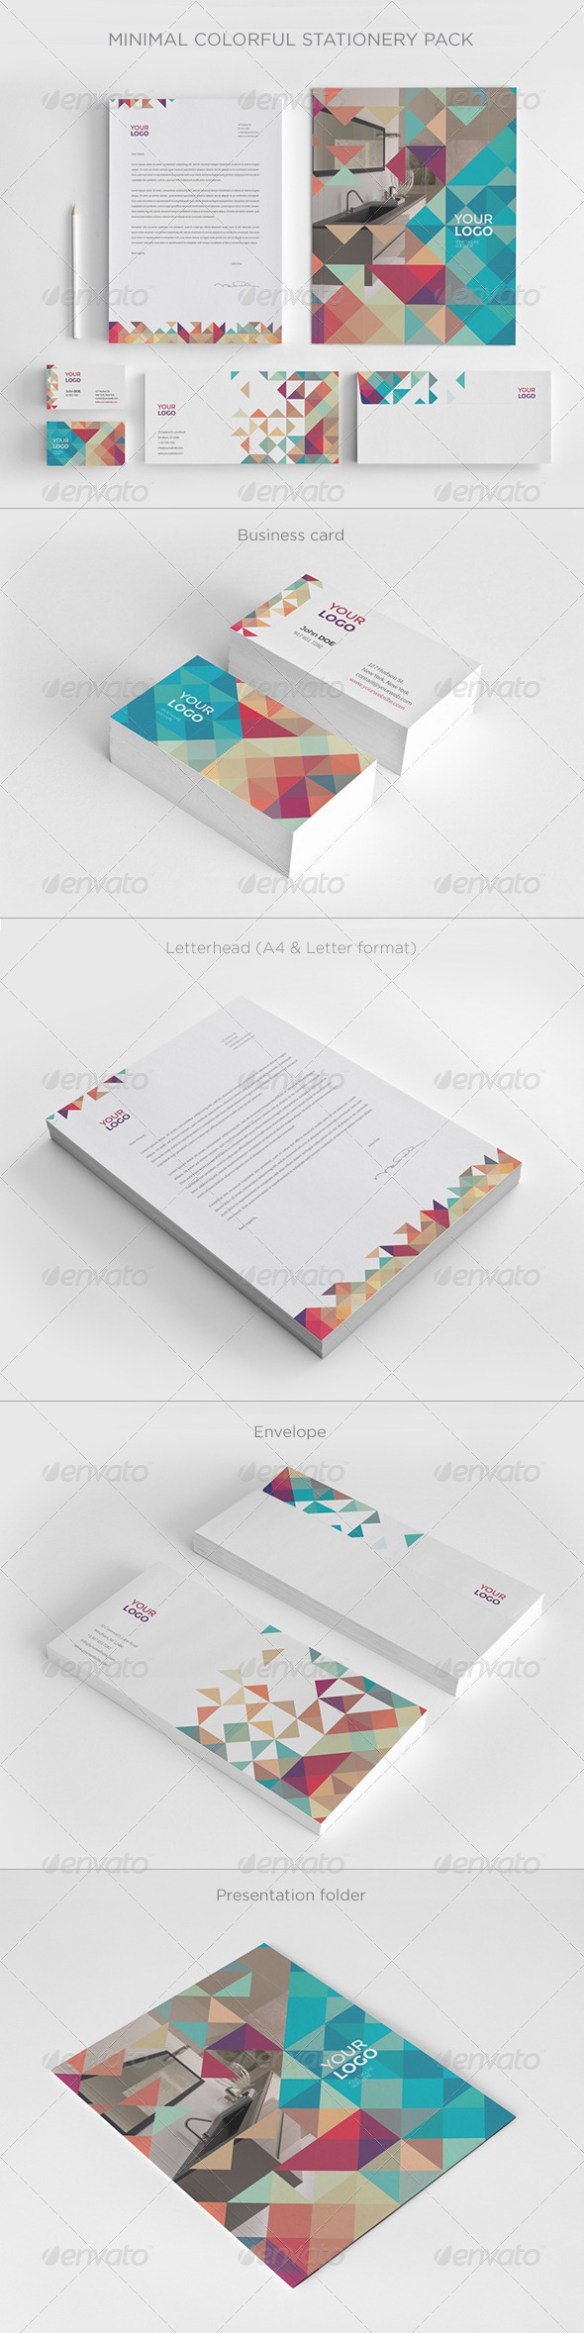 Minimal Colorful Stationery - Stationery Print Templates